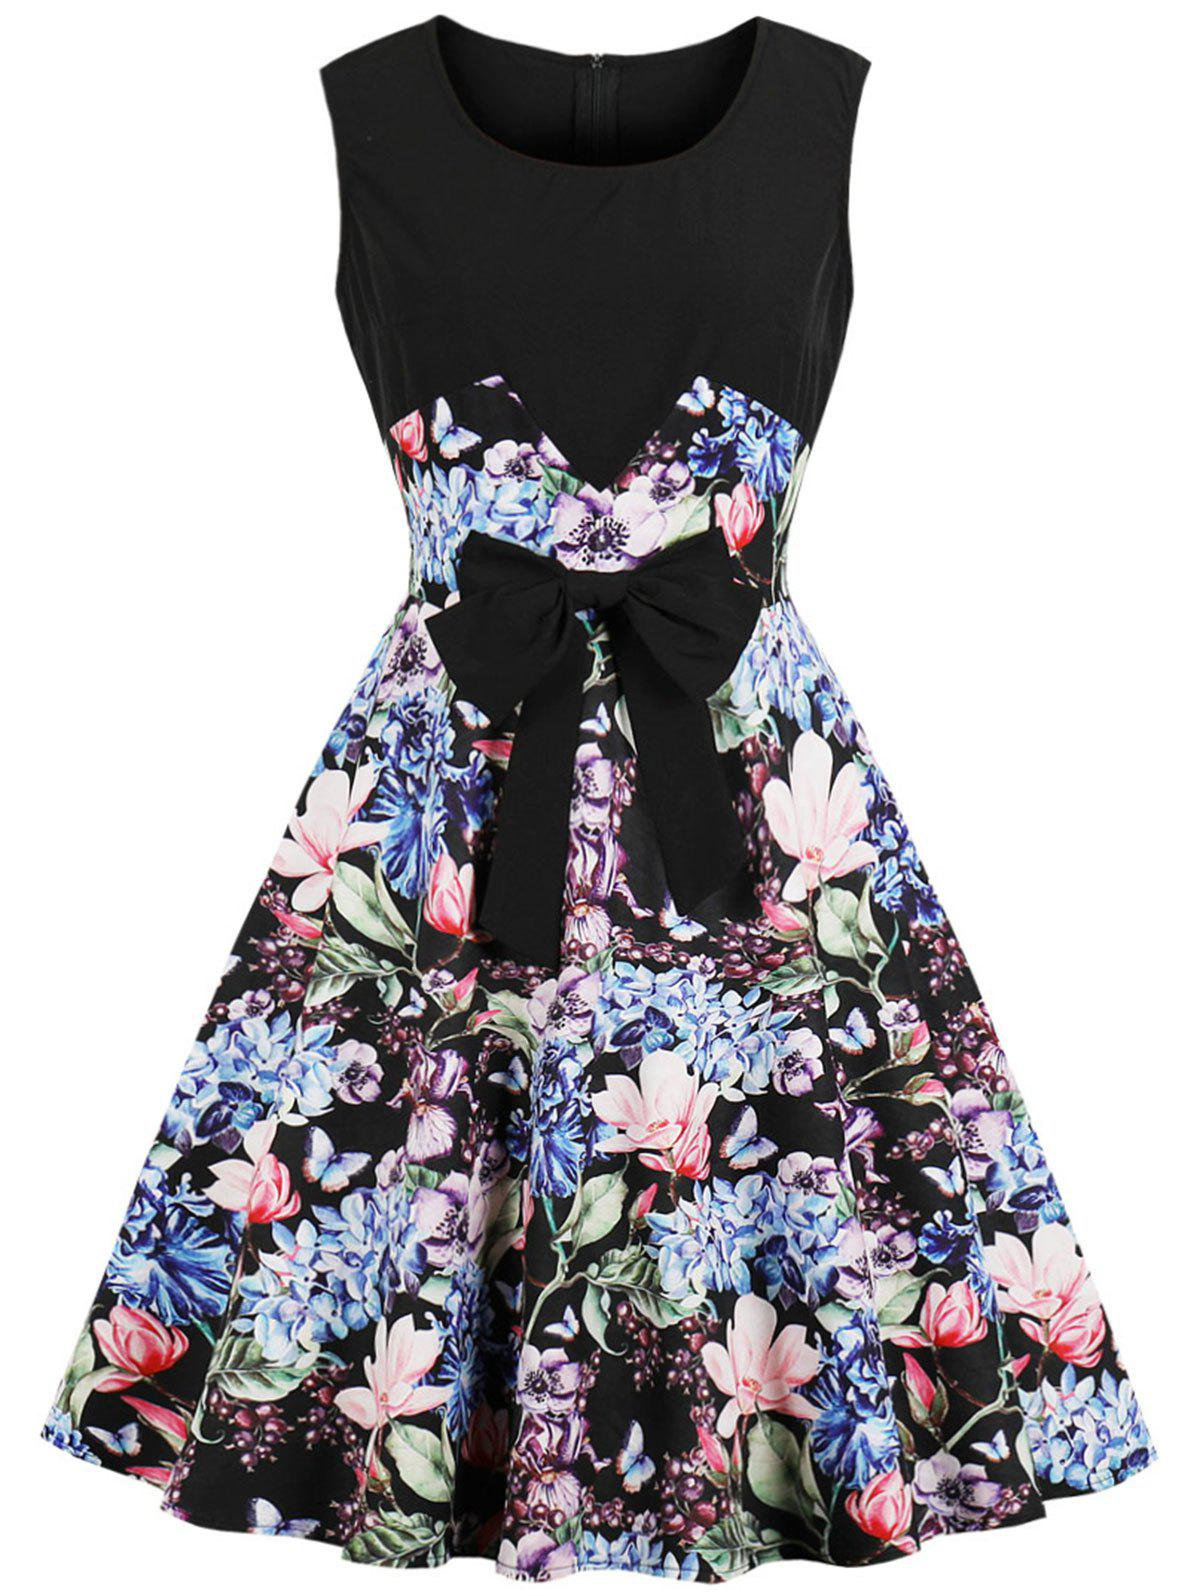 Online Vintage Sleeveless Bowknot Floral Print Pin Up Dress